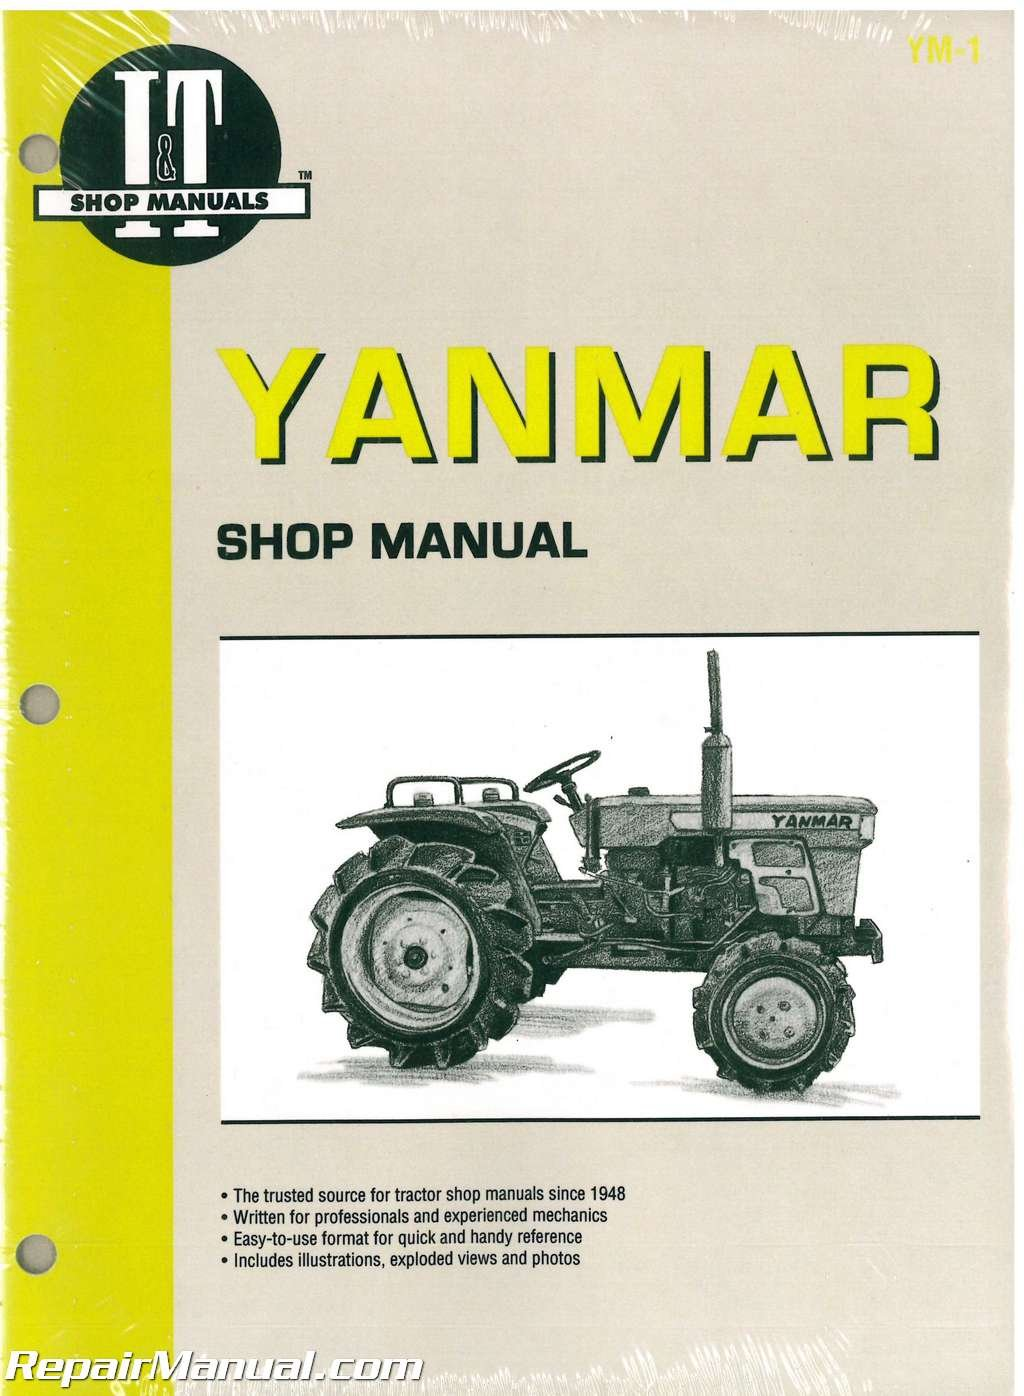 YM-1 Yanmar YM135 YM135D YM155 YM155D YM195 YM195D YM240 YM240D YM330  YM330D Tractor Manual: Manufacturer: Amazon.com: Books